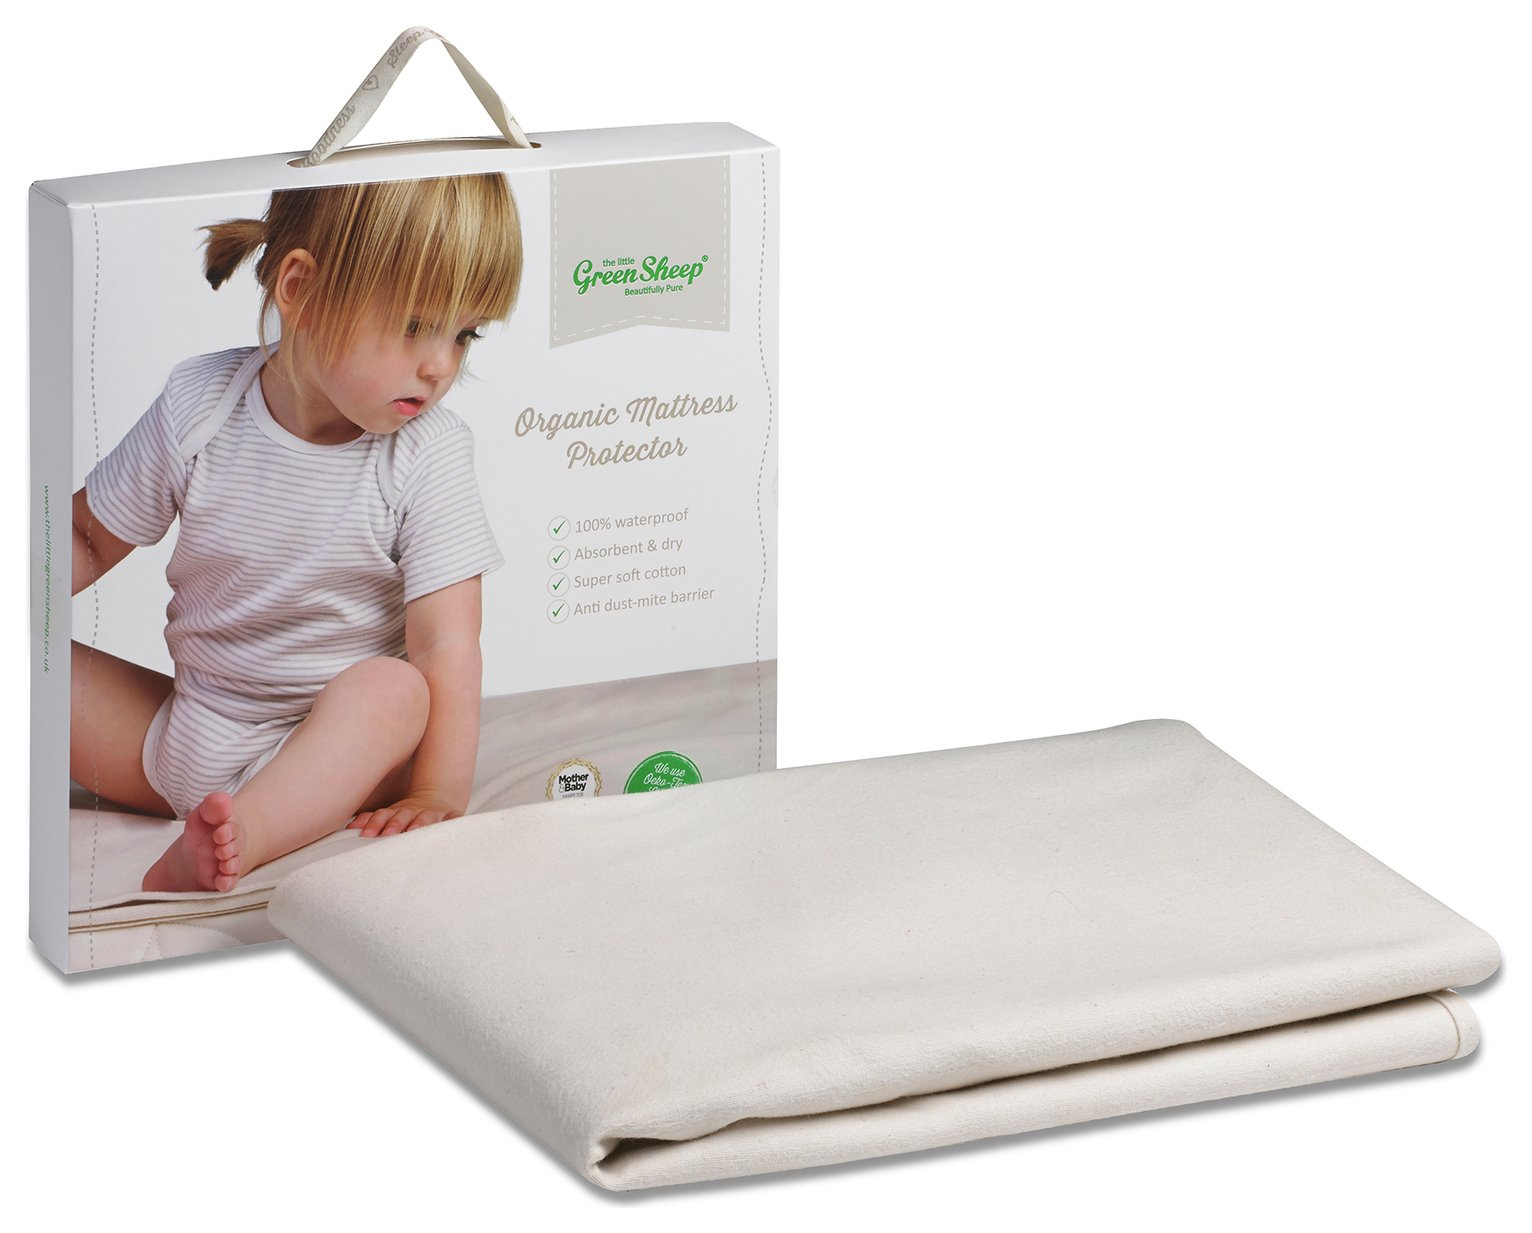 The Little Green Sheep Cot Mattress Protector